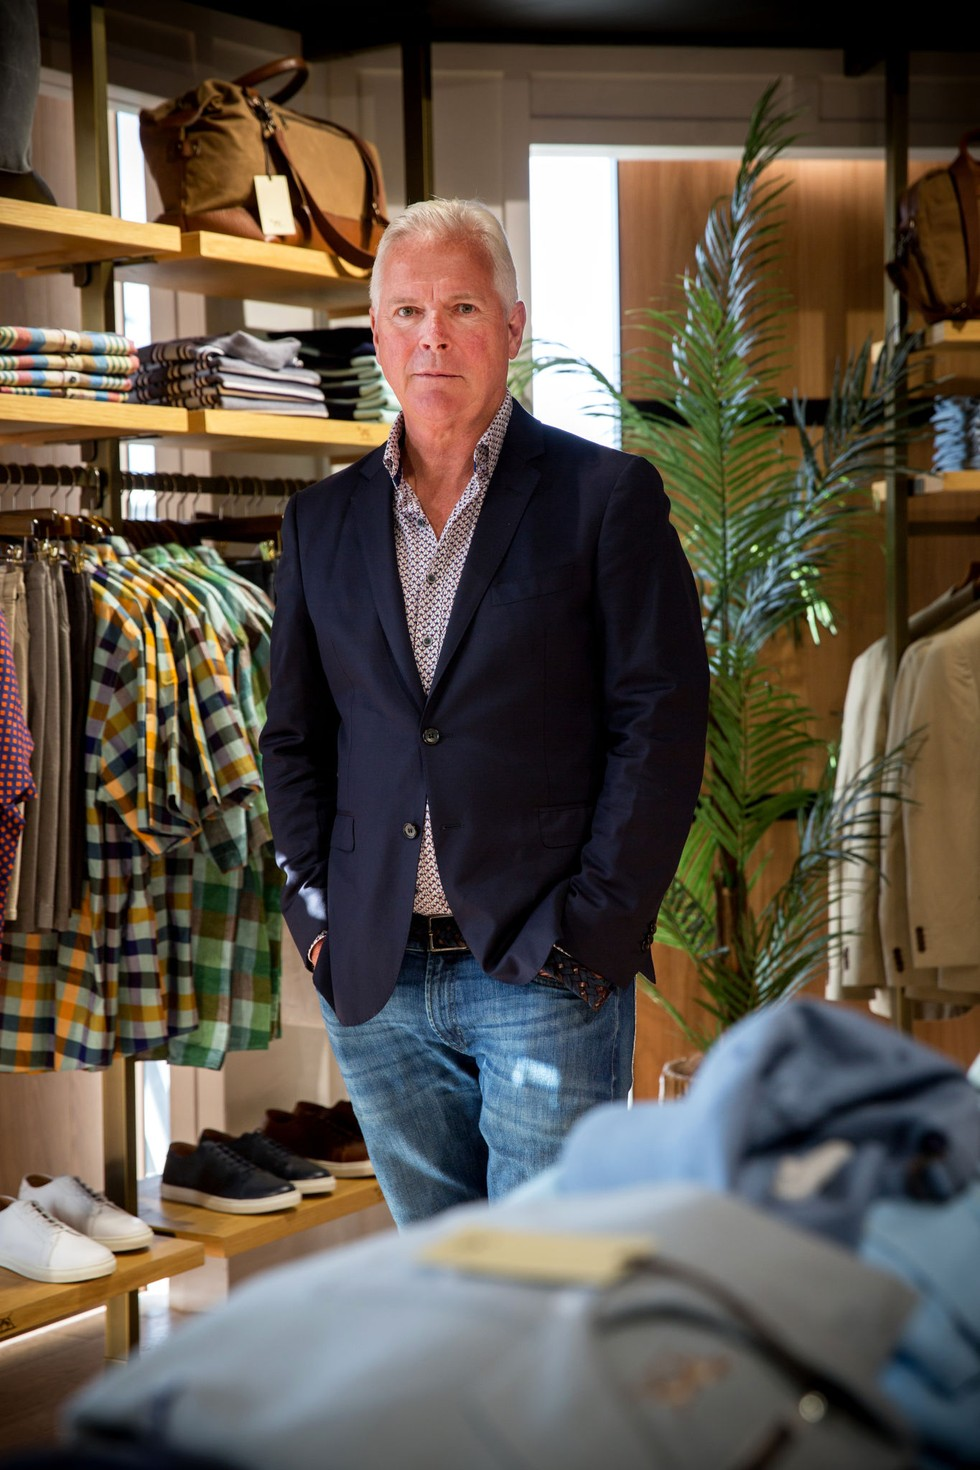 Mike Beagley. who is the Managing Director of menswear brand, Rodd & Gunn